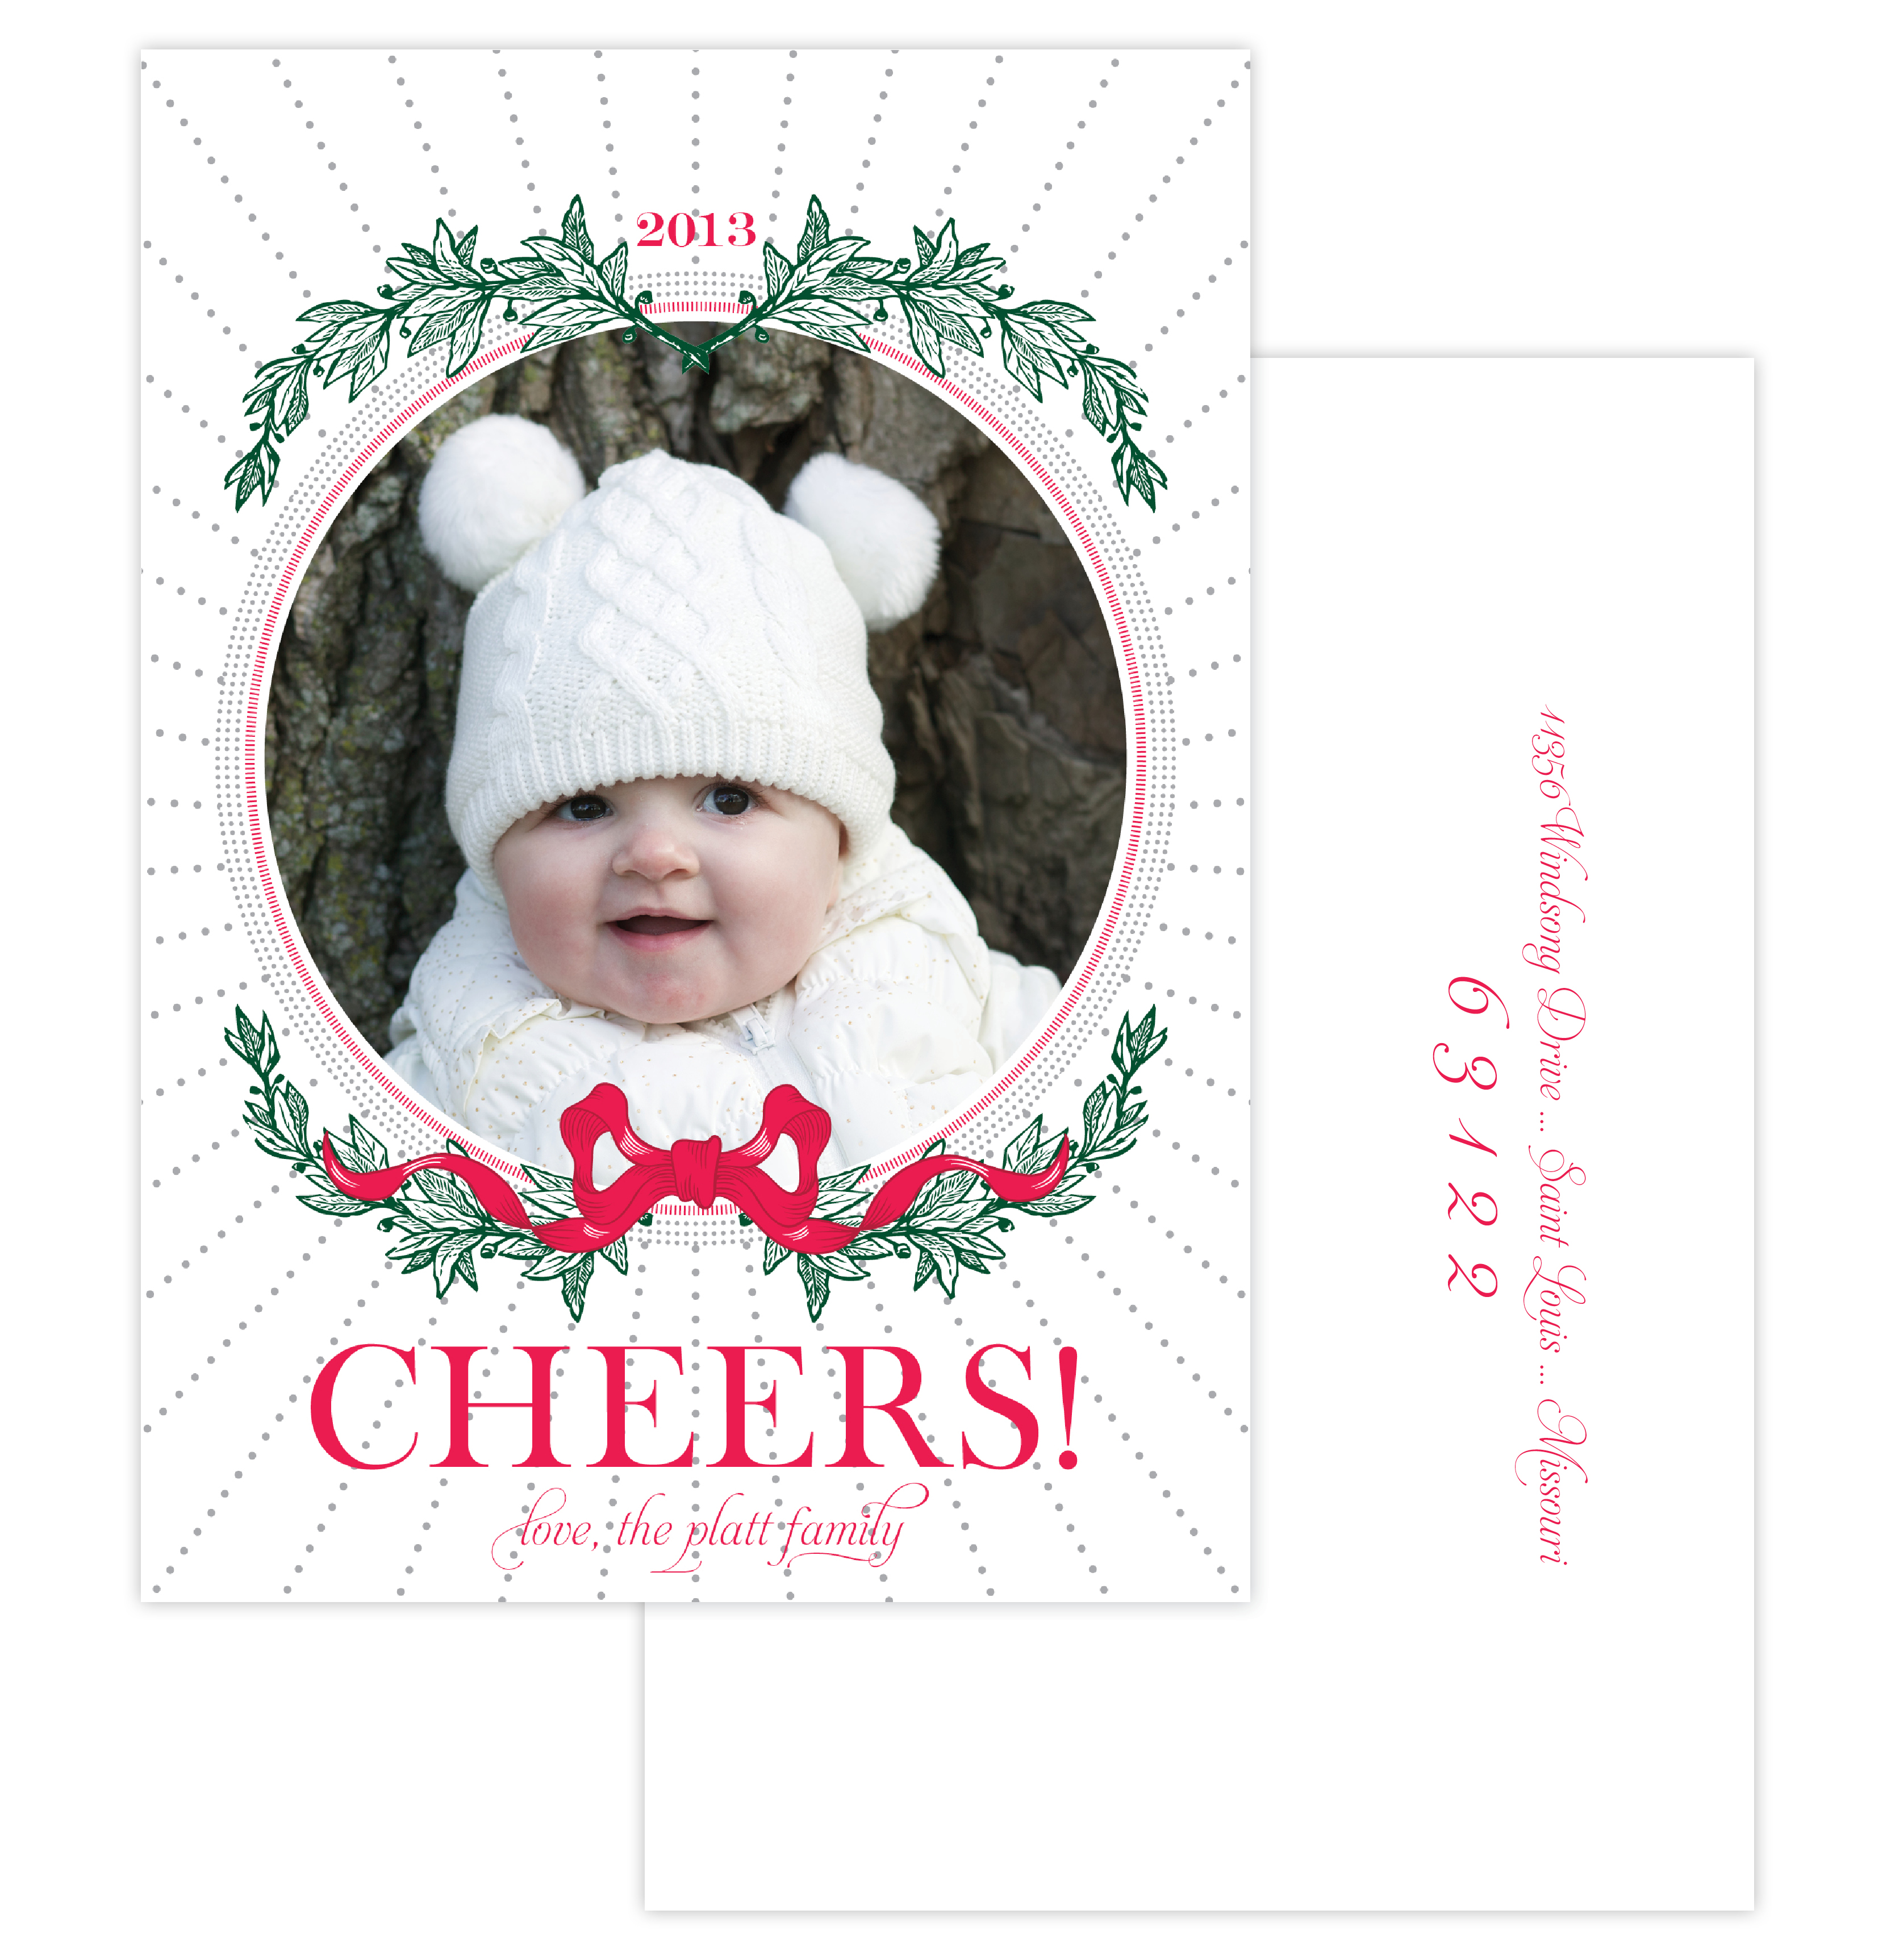 Festive Cheer Holiday Photo Card